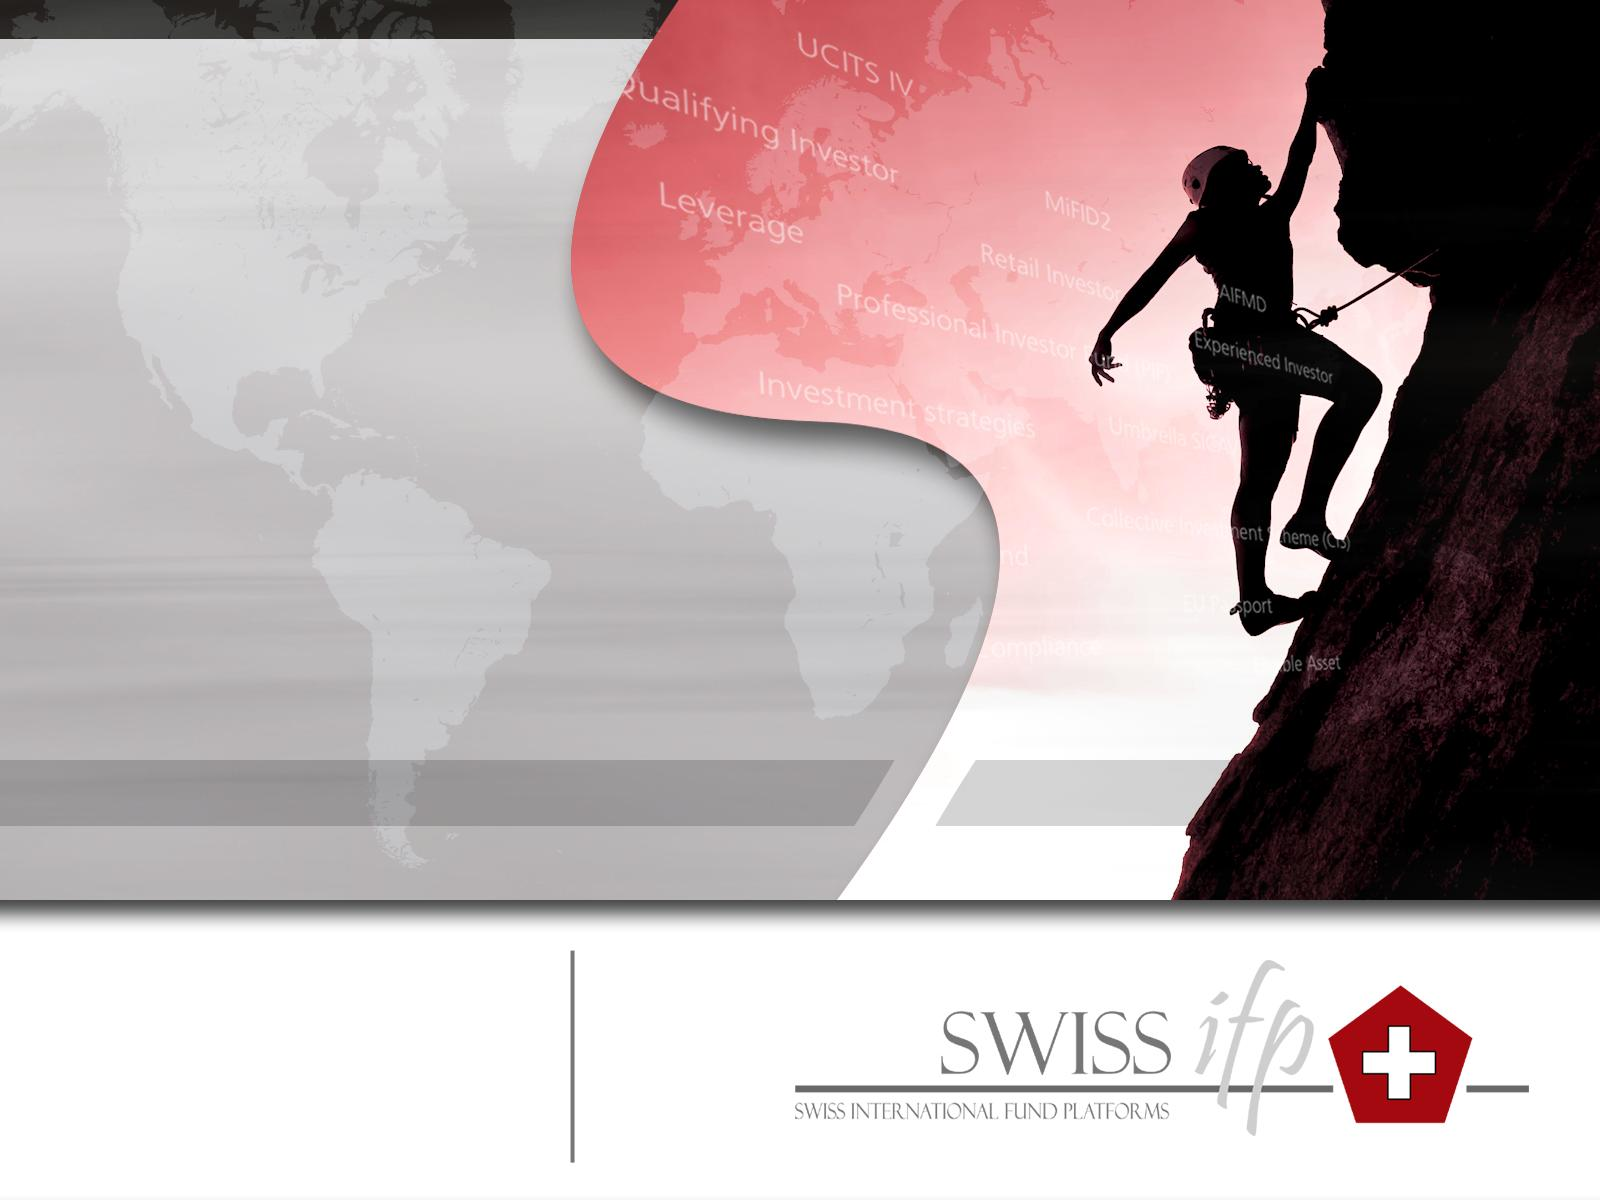 Lugano Fund Forum Swiss International Fund